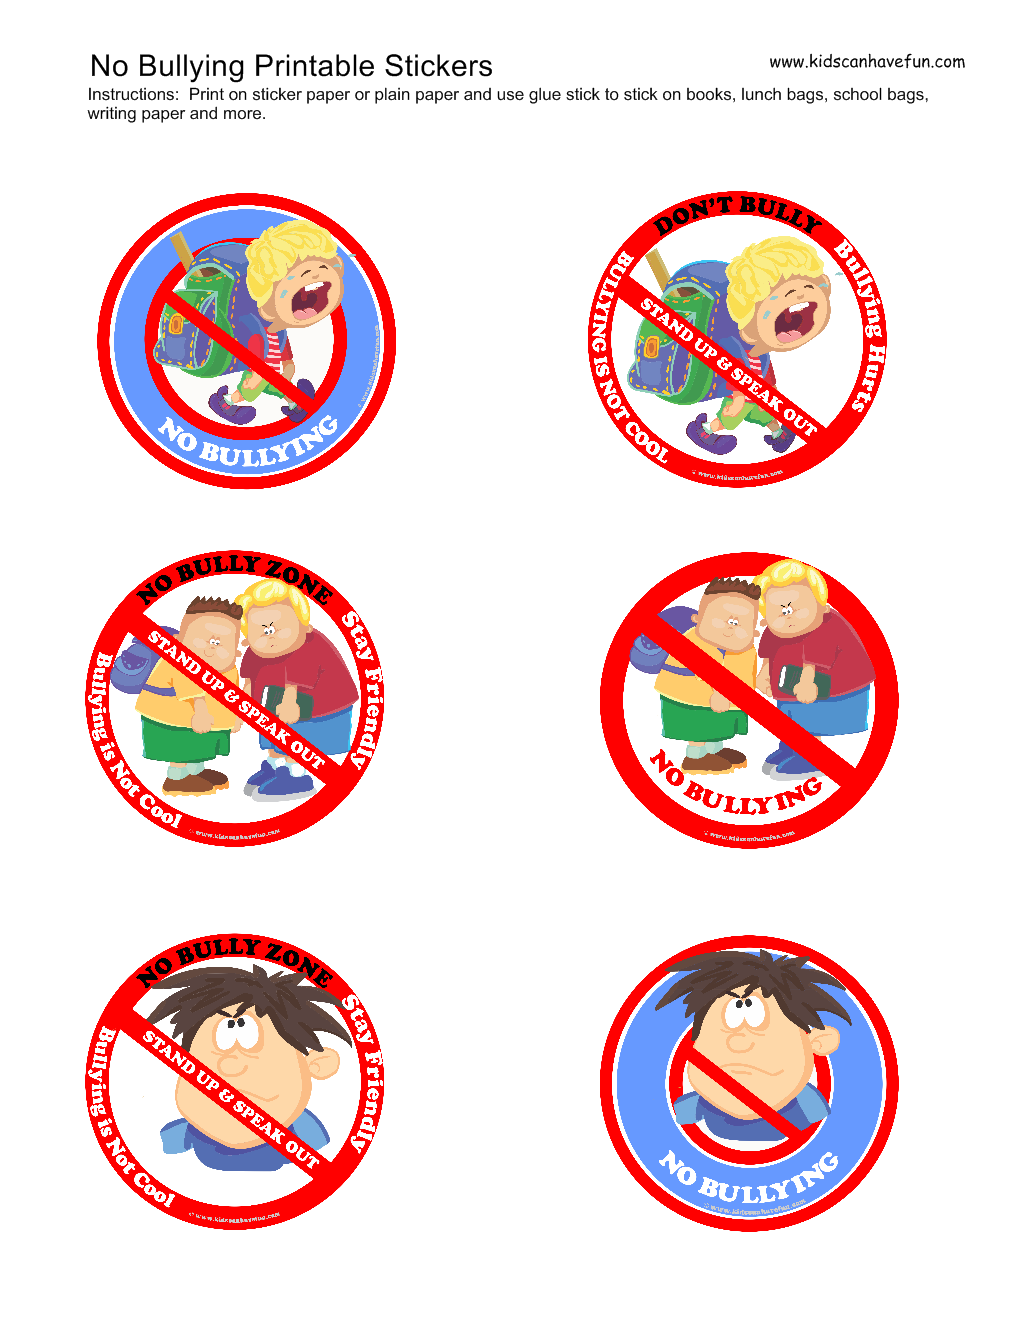 worksheet Anti Bullying Worksheets no bullying stickers dont bully anti stop worksheets posters labels activities